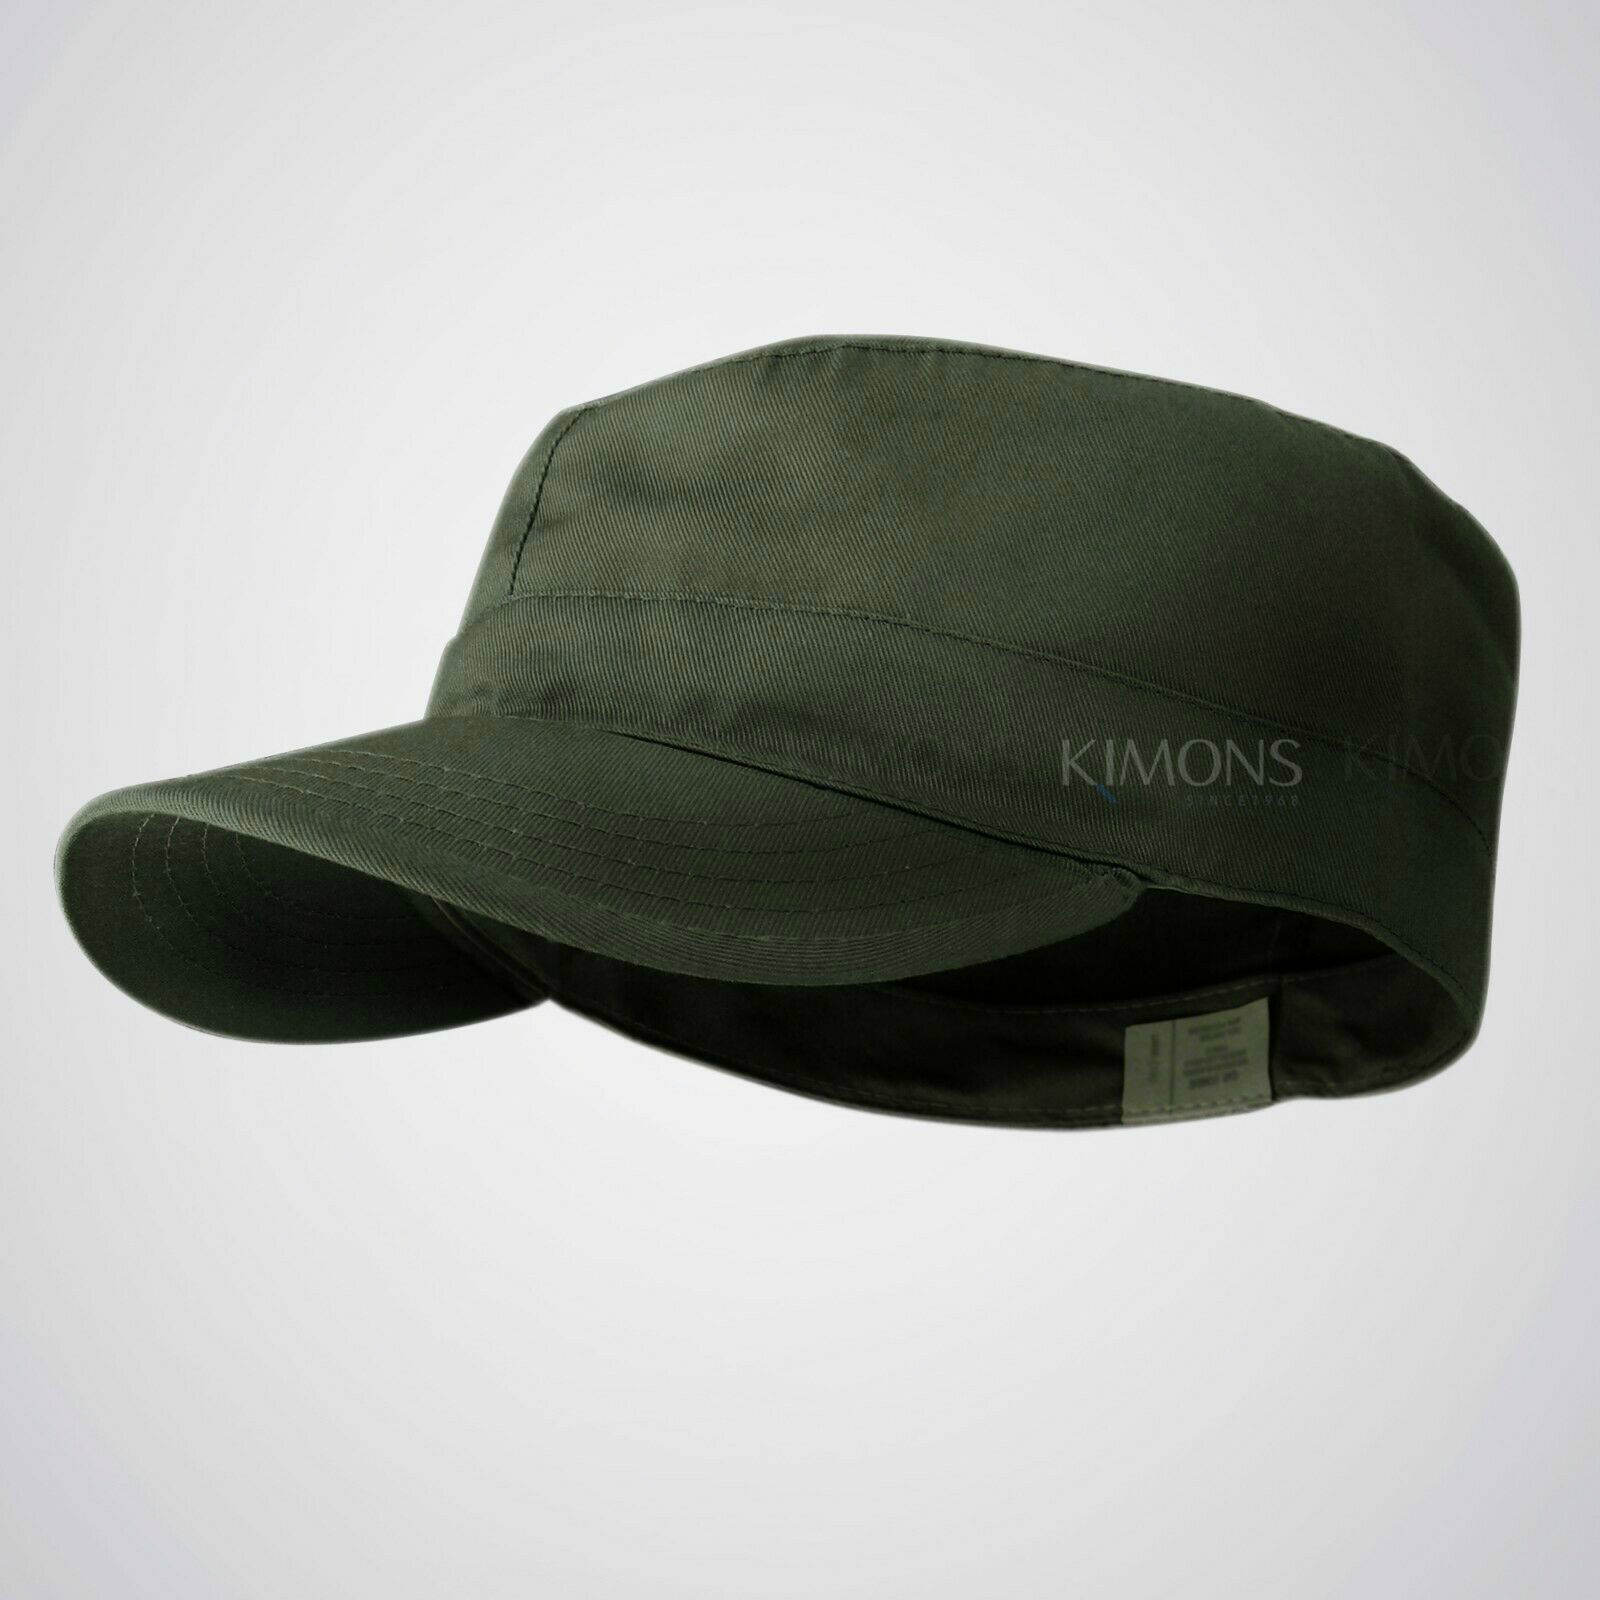 BDU Fitted Army Cadet Military Cap Hat Patrol Castro Combat Hunting (FREE SHIPPING - US ONLY)